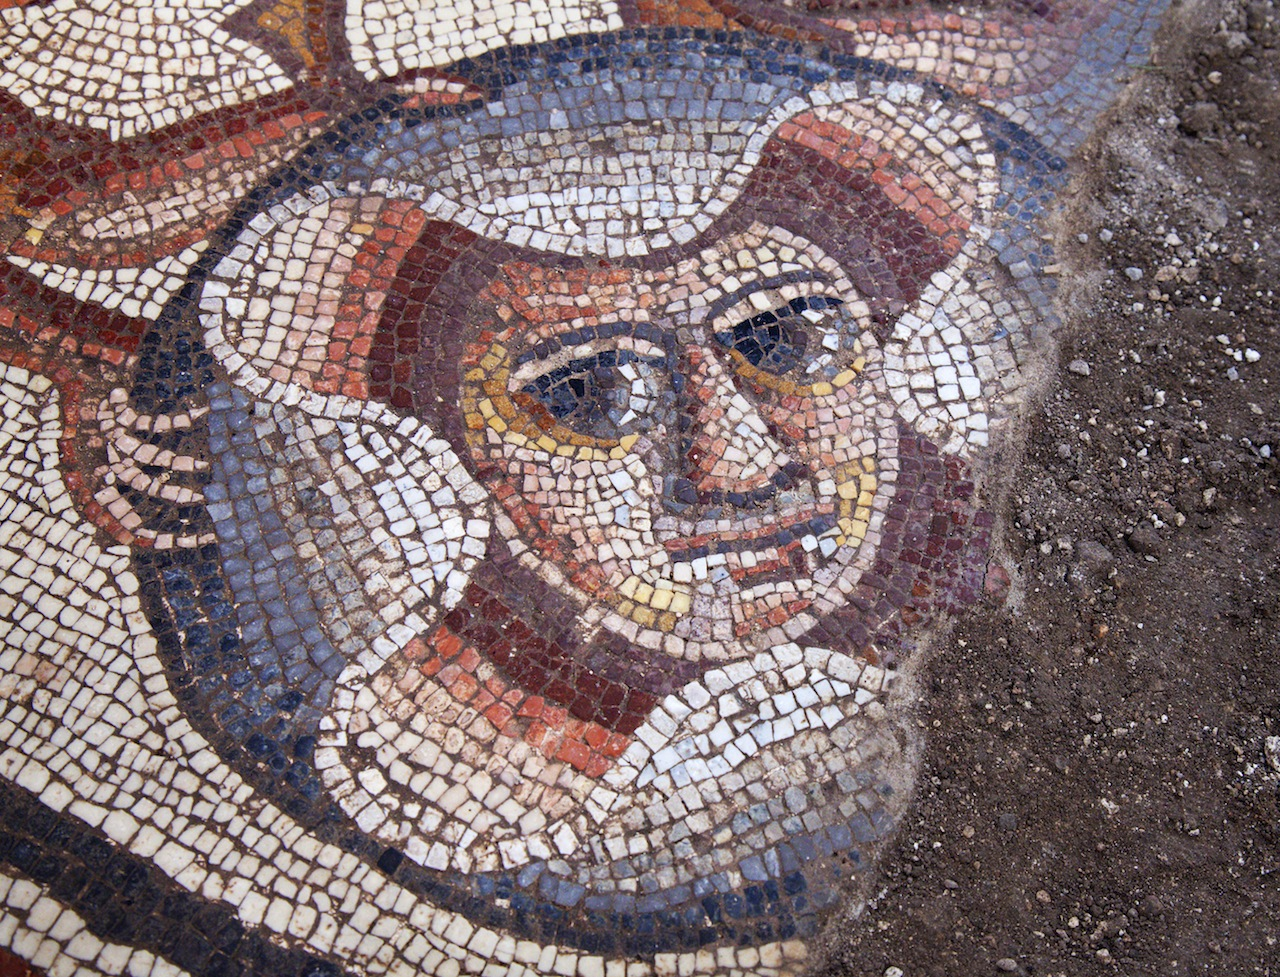 Theater mask in the Huqoq synagogue mosaic.